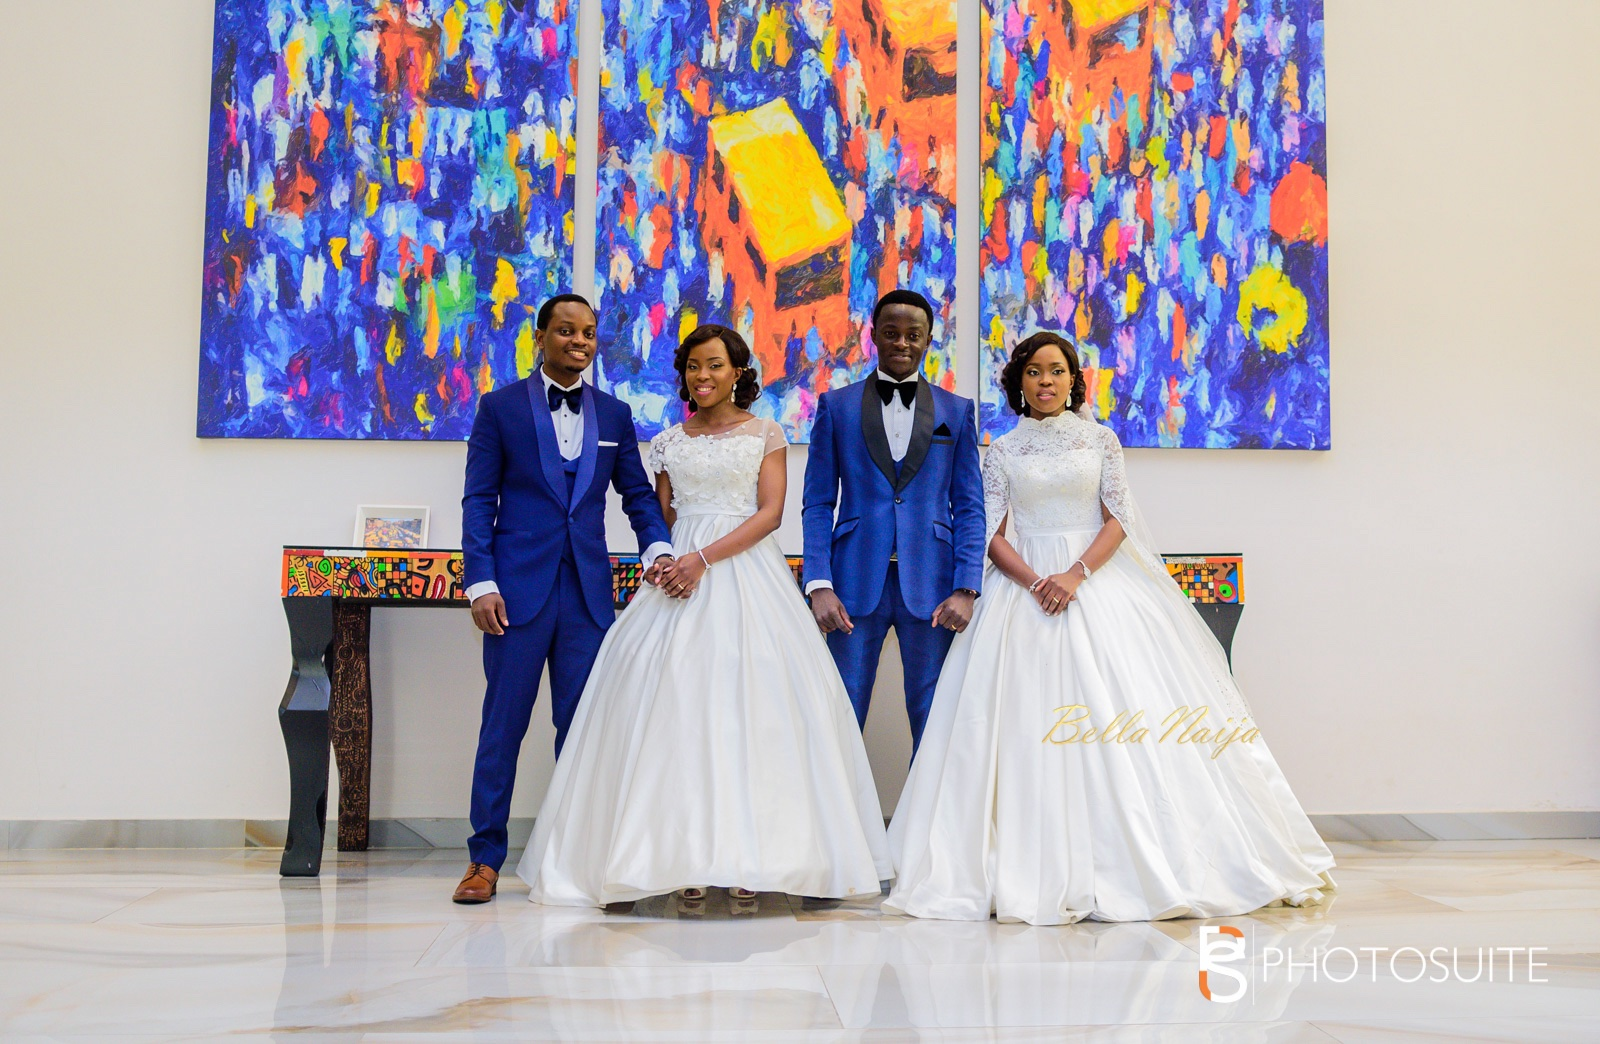 HOT!!!: Photos Of Twin Sisters Who Got Married On The Same Day To Their Sweethearts